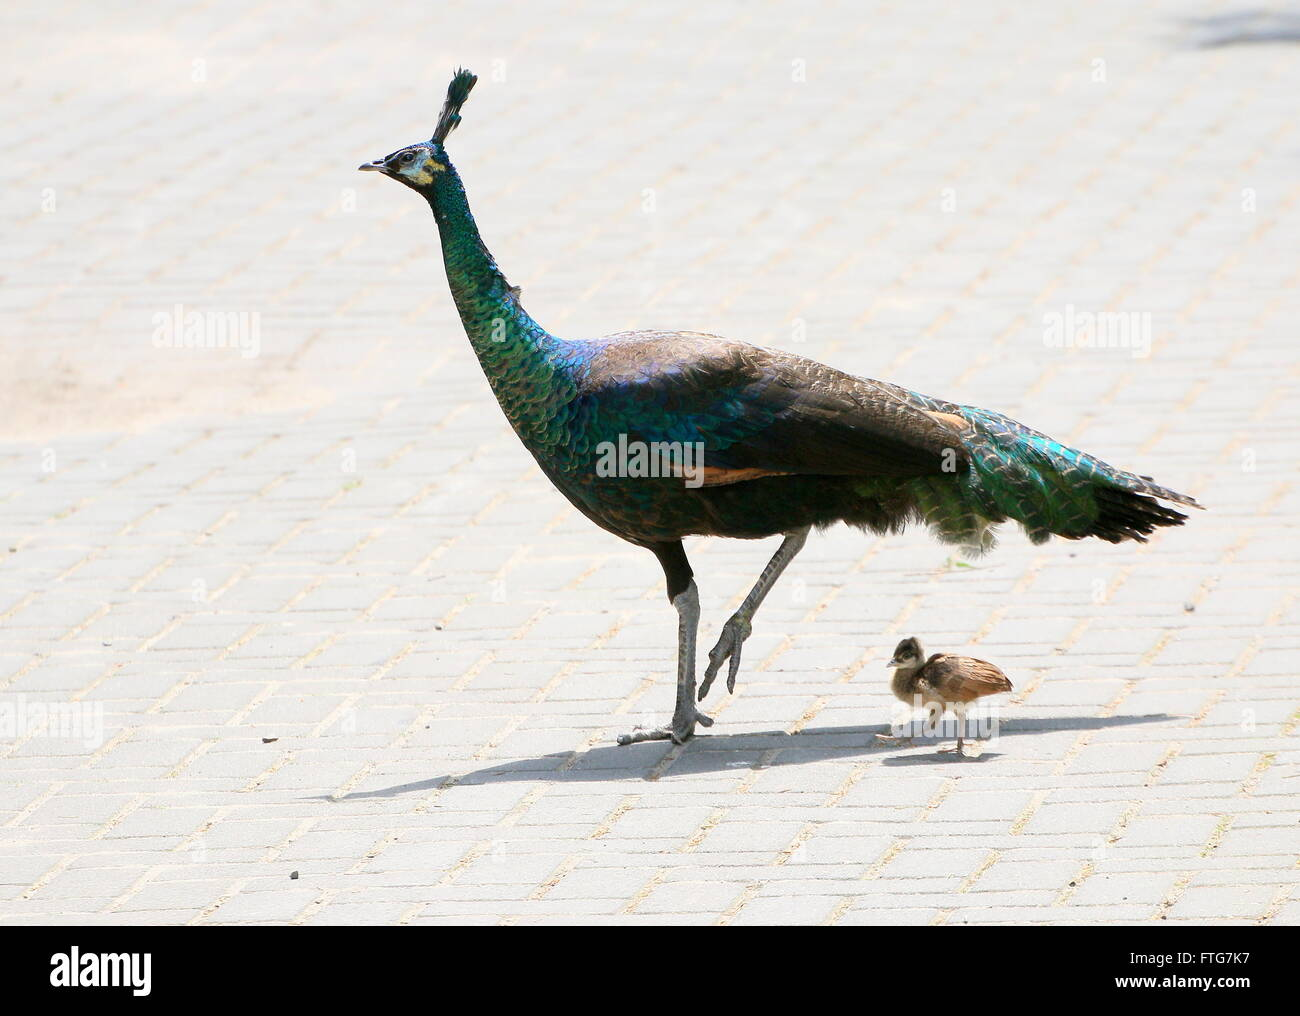 Female Asian Green Peahen or Java peafowl (Pavo muticus) with one of her baby chicks - Stock Image